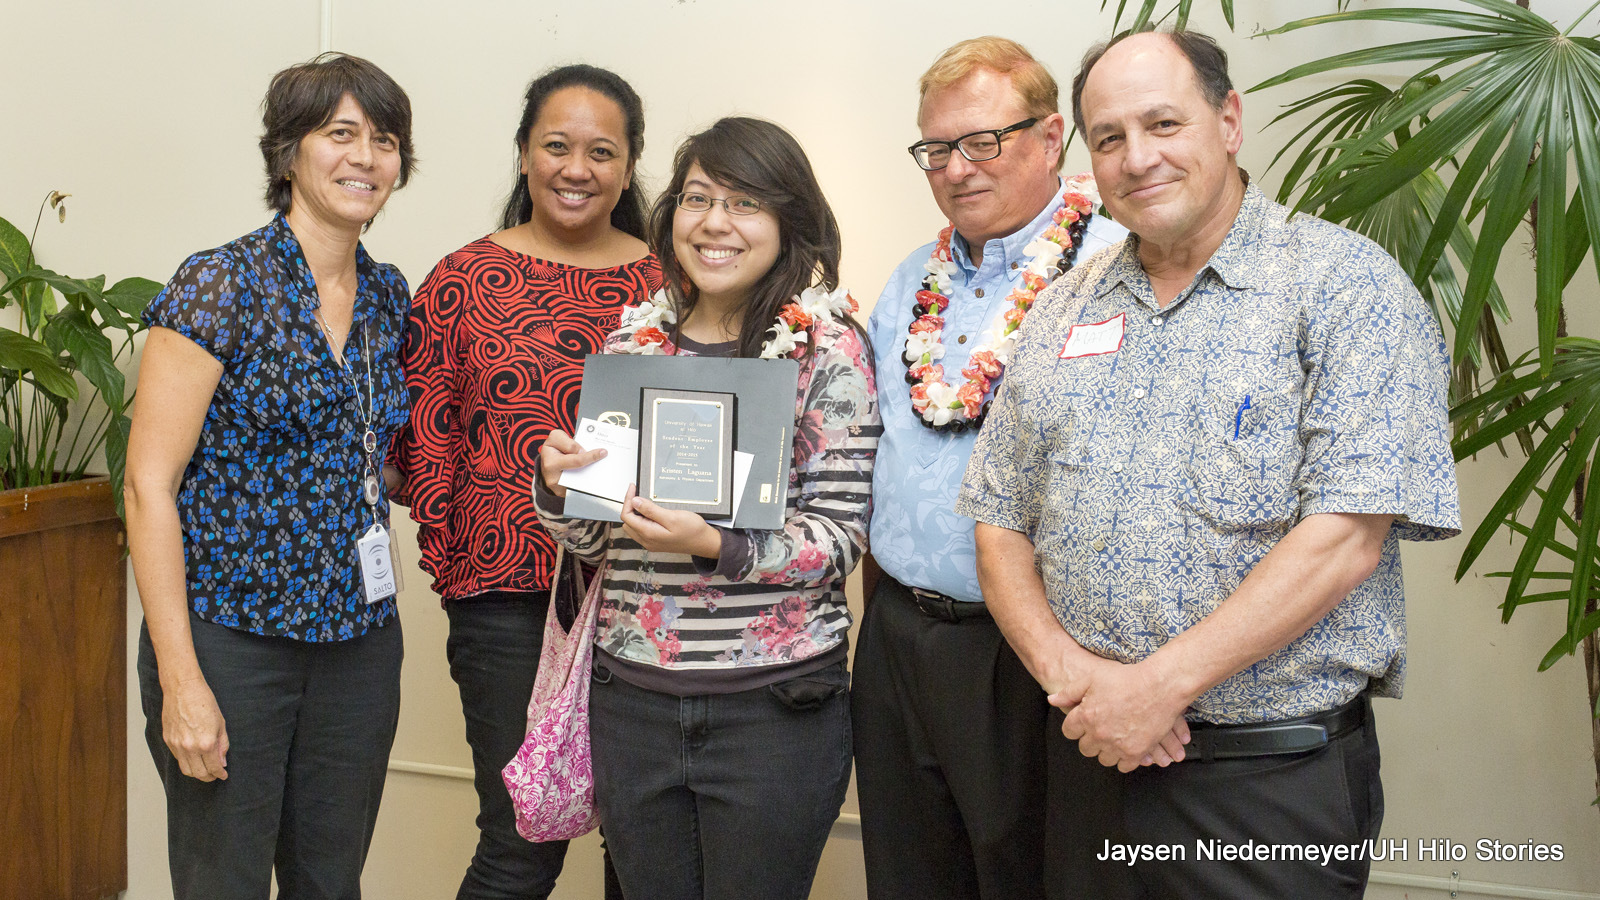 PHOTOS: UH Hilo 2015 Awards and Recognition